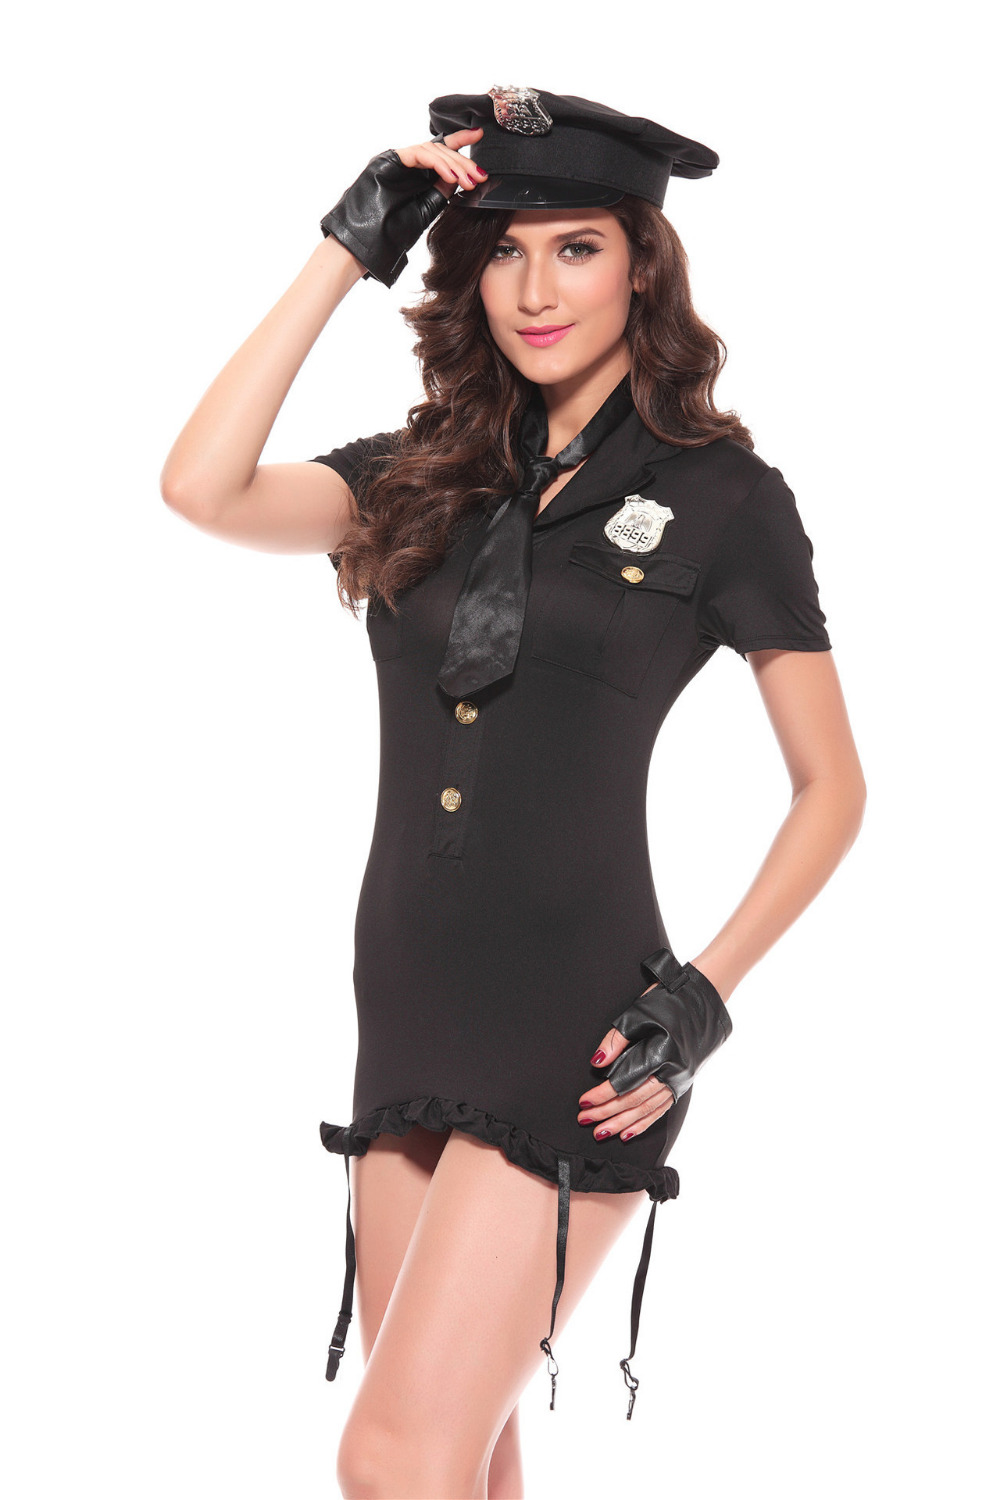 Sexy Women  Policewoman Costume Halloween Cosplay Cop Uniform Mini Dress